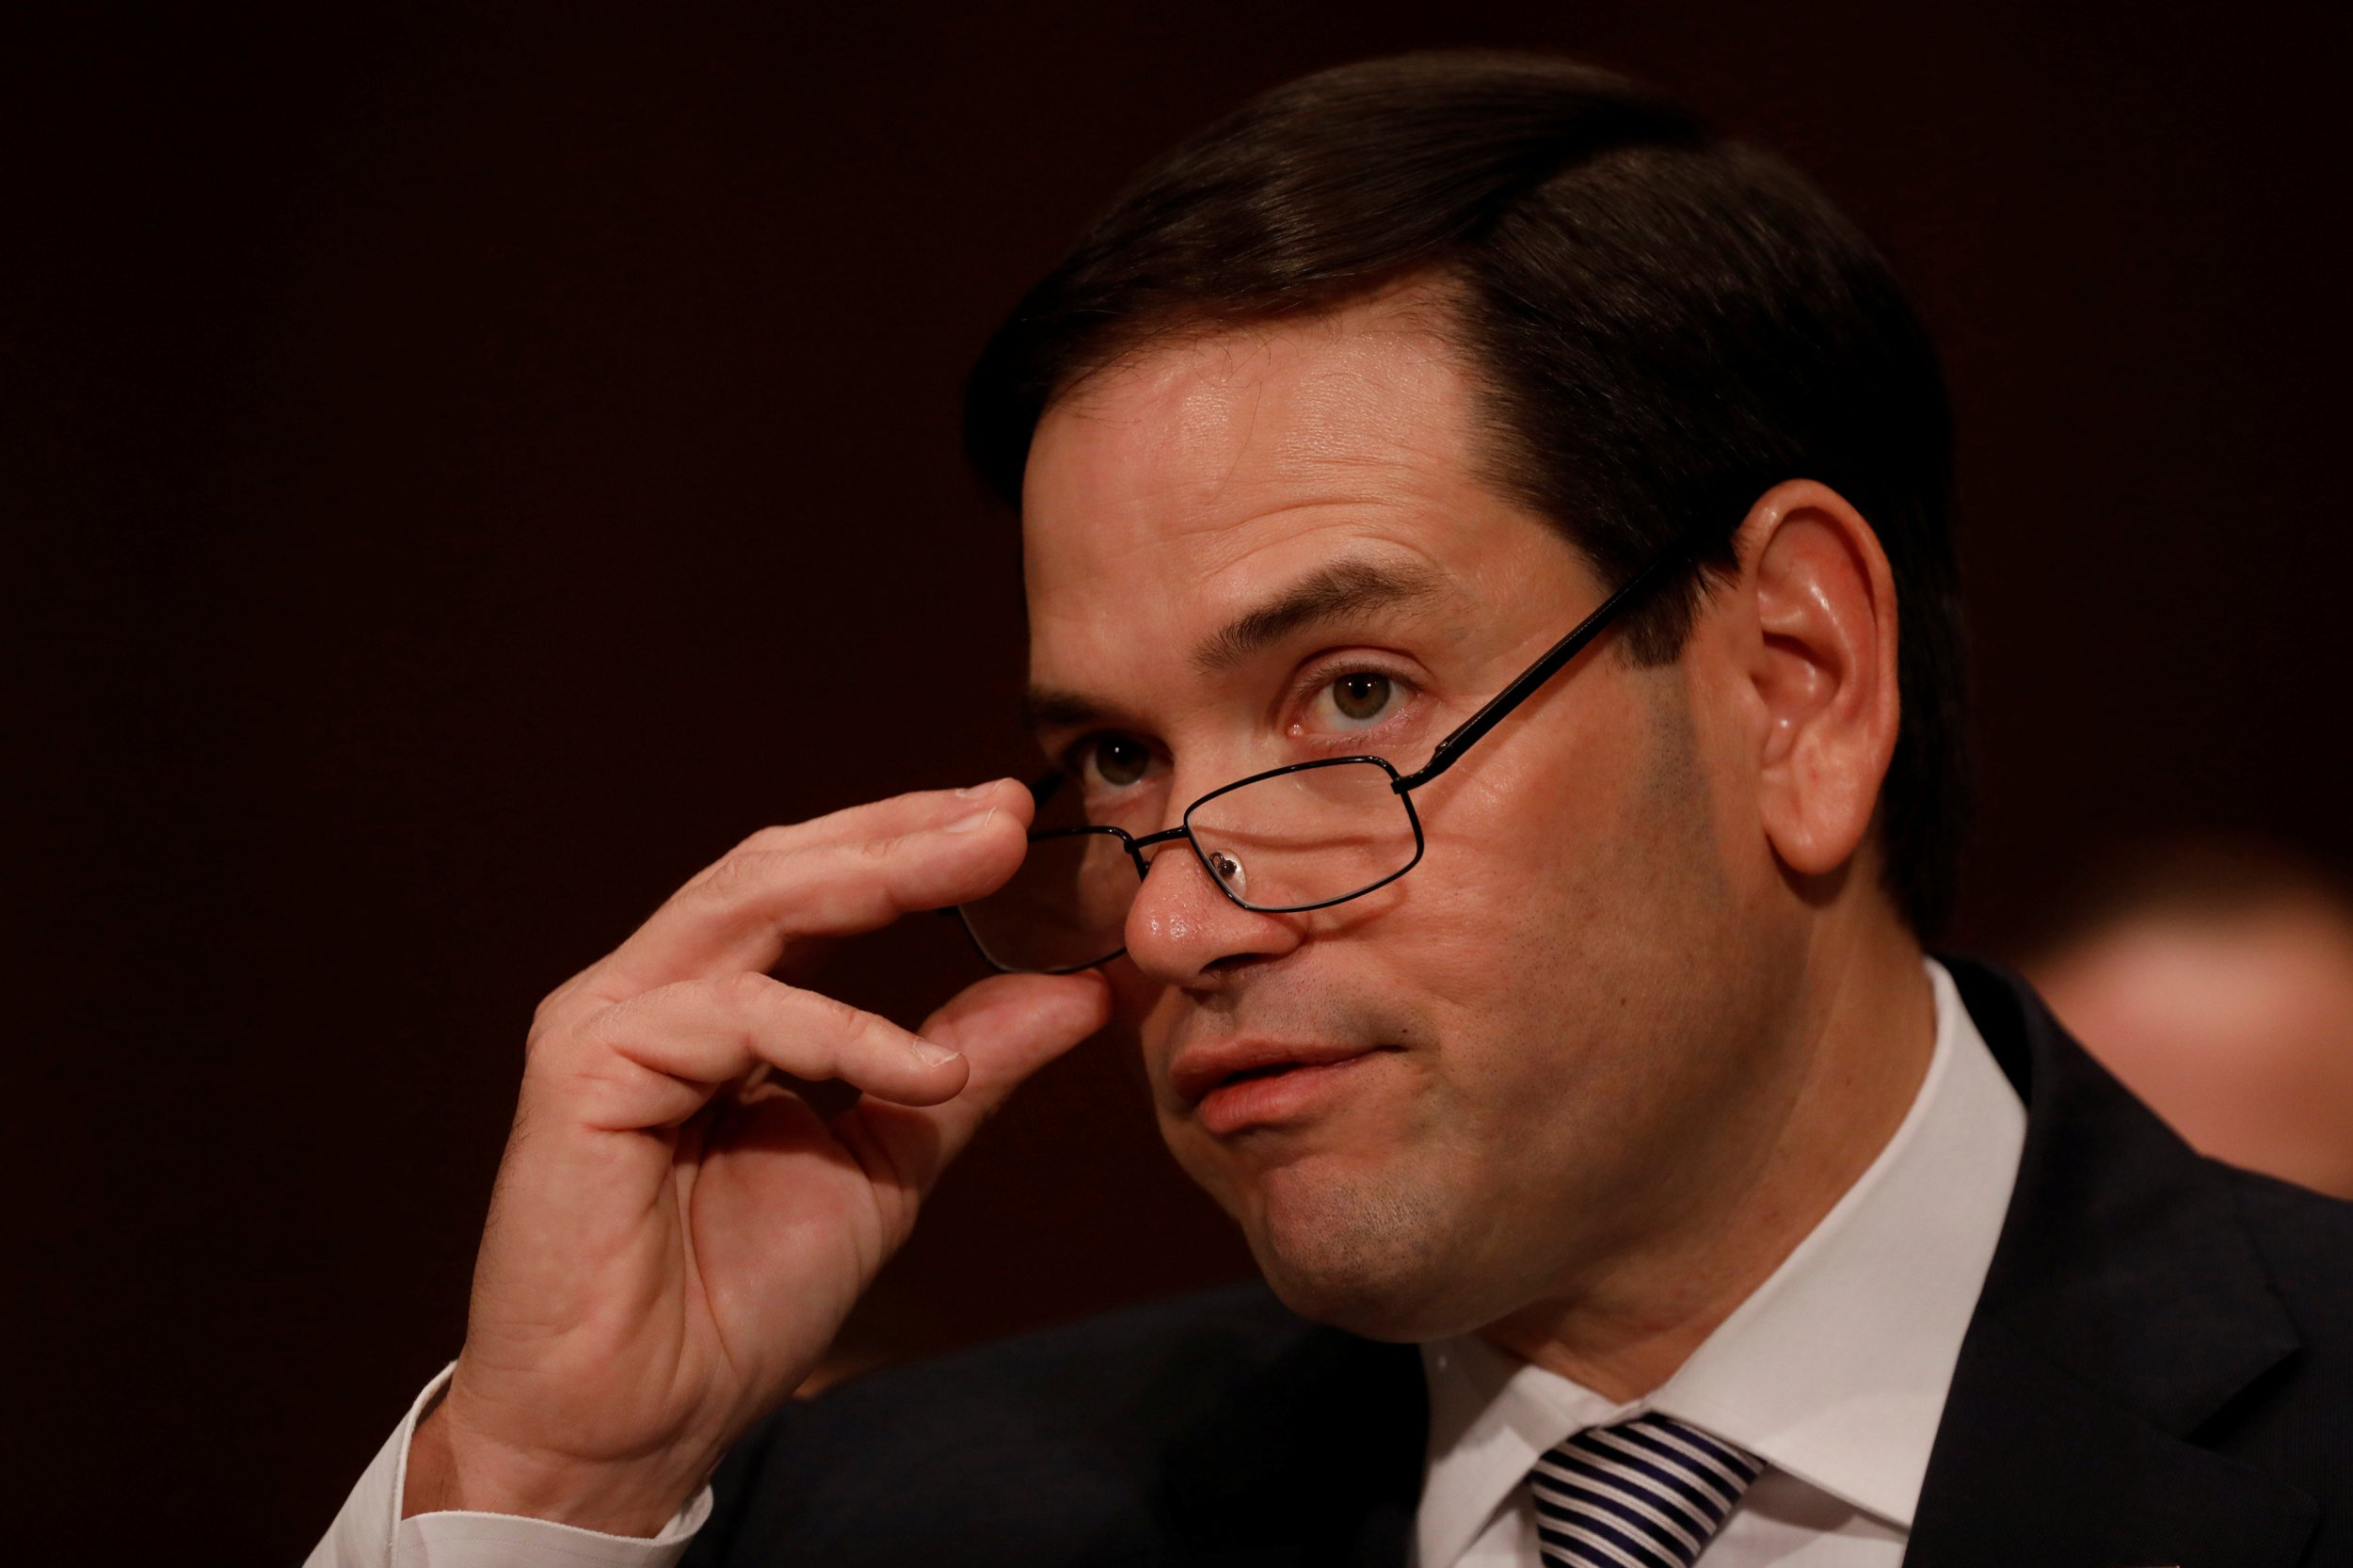 marco rubio 15062018 florida senator marco rubio veered way out of his lane discussing kanye west's latest album in a bizarre twitter video.